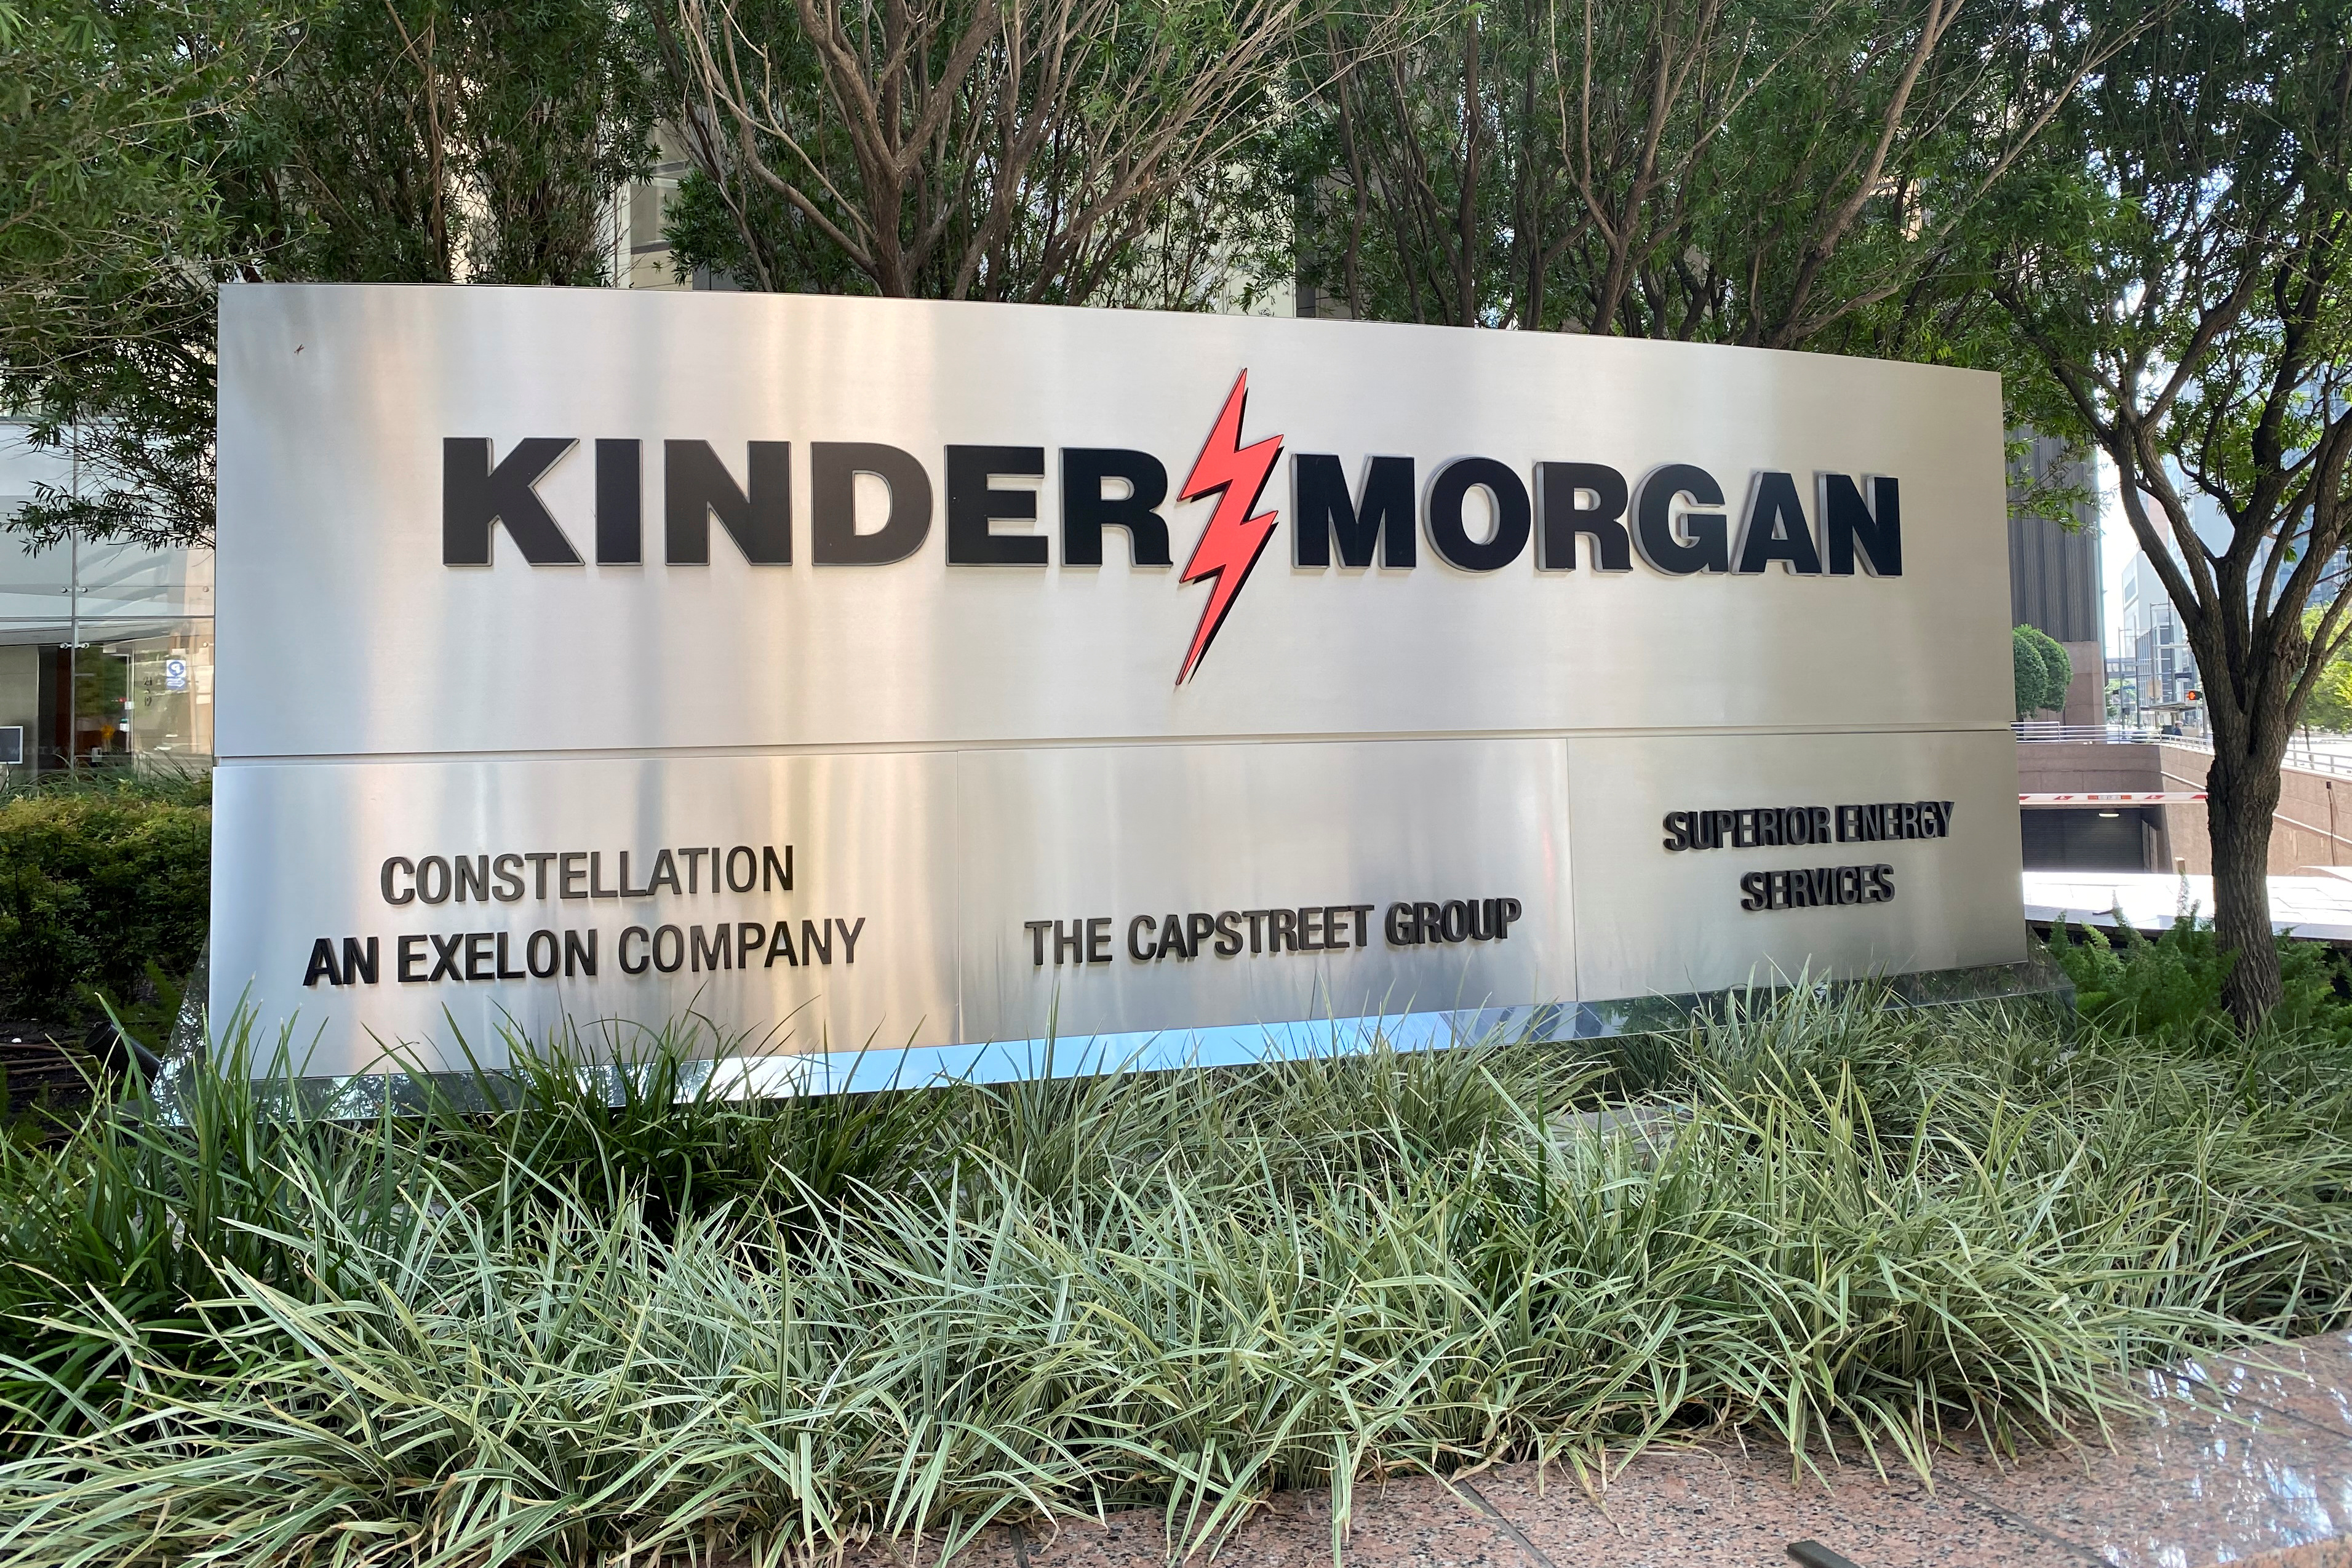 The headquarters of U.S. energy exporter and pipeline operator Kinder Morgan Inc. is seen in Houston, Texas, U.S. September 27, 2020. REUTERS/Gary McWilliams/File Photo